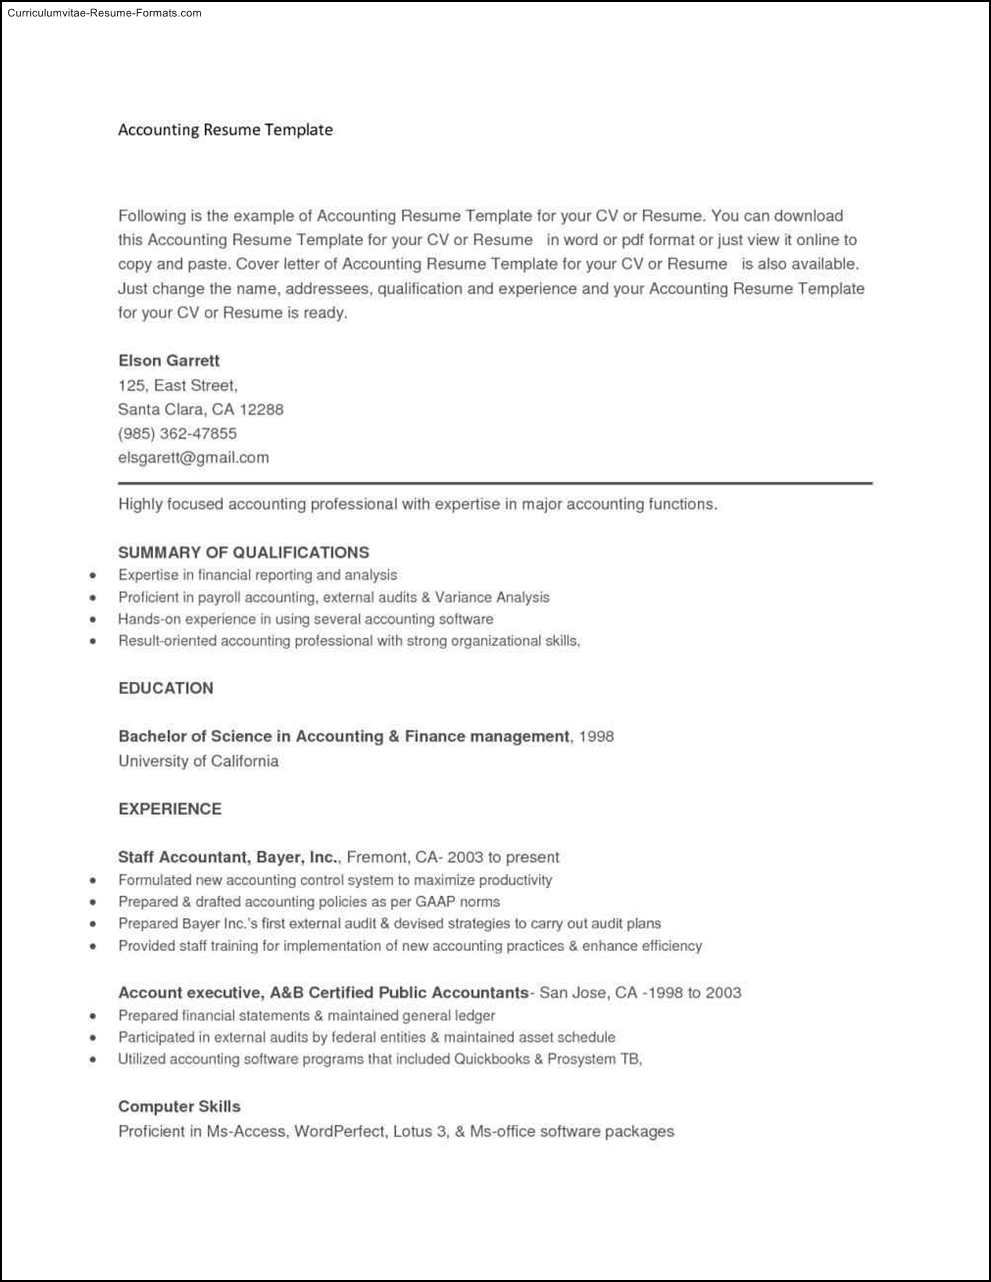 Copy And Paste Resume Templates  Free Samples  Examples